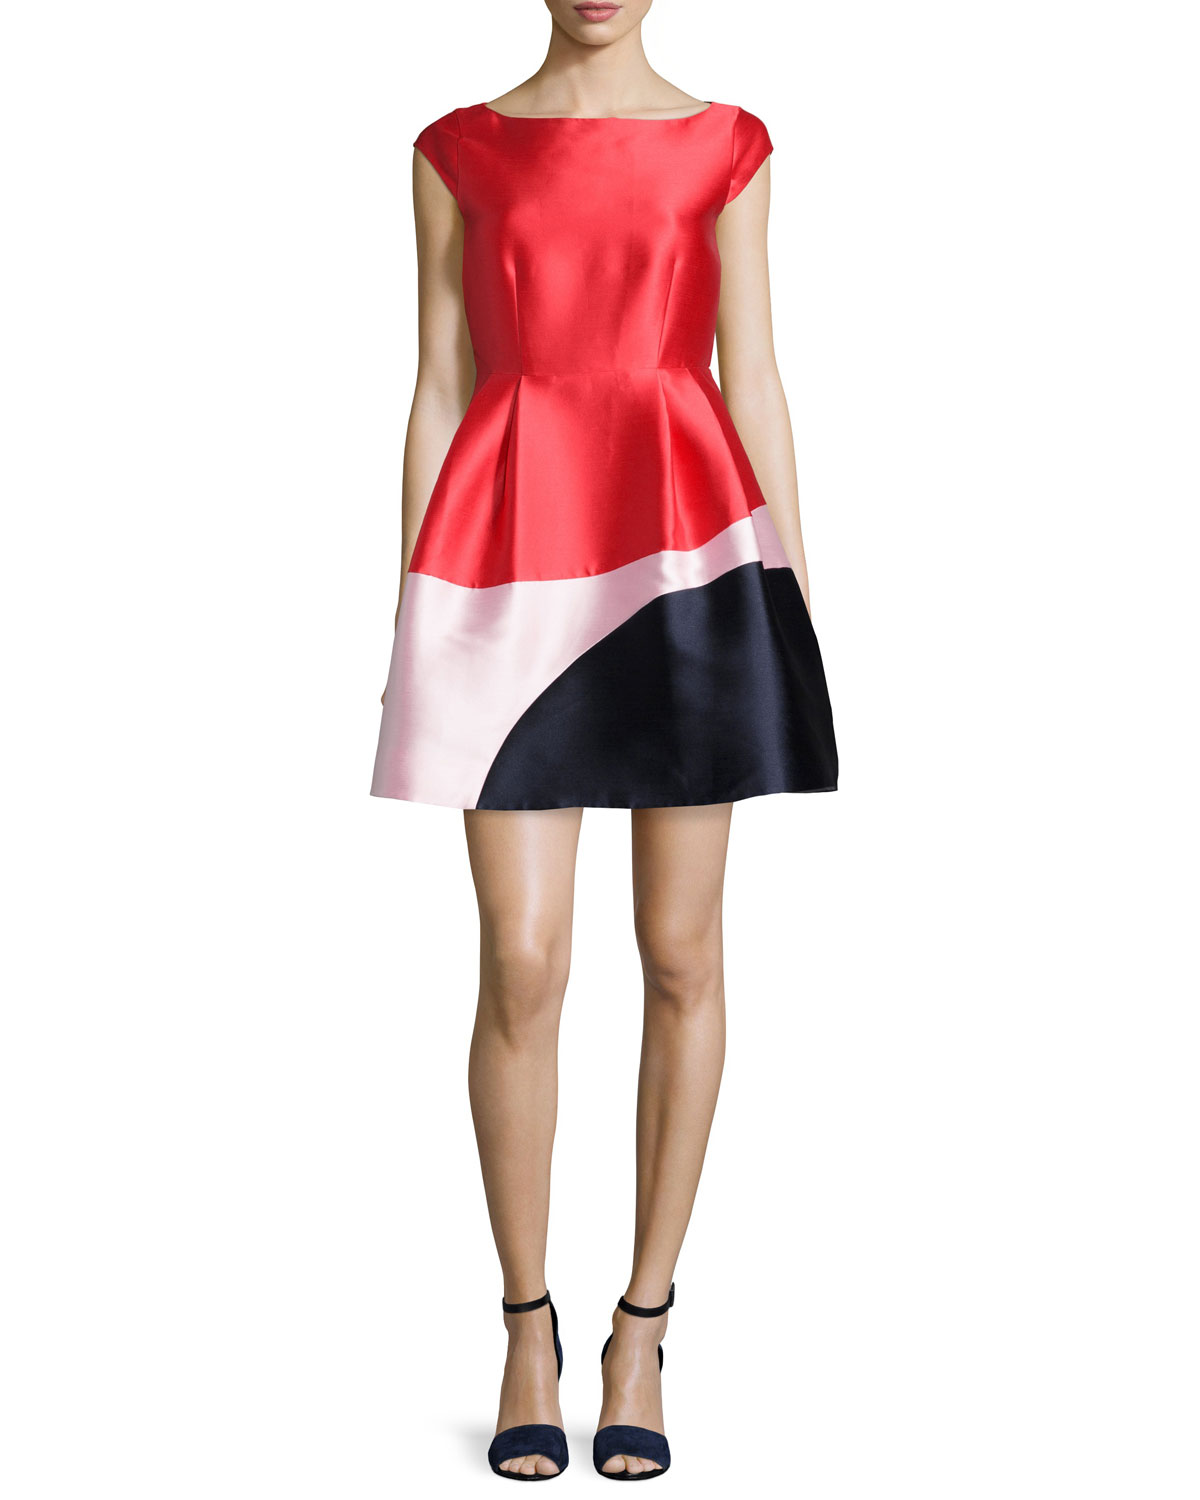 cap-sleeve colorblock fit & flare dress, Women's, Size: 0, Fairytale Red Mlt - kate spade new york